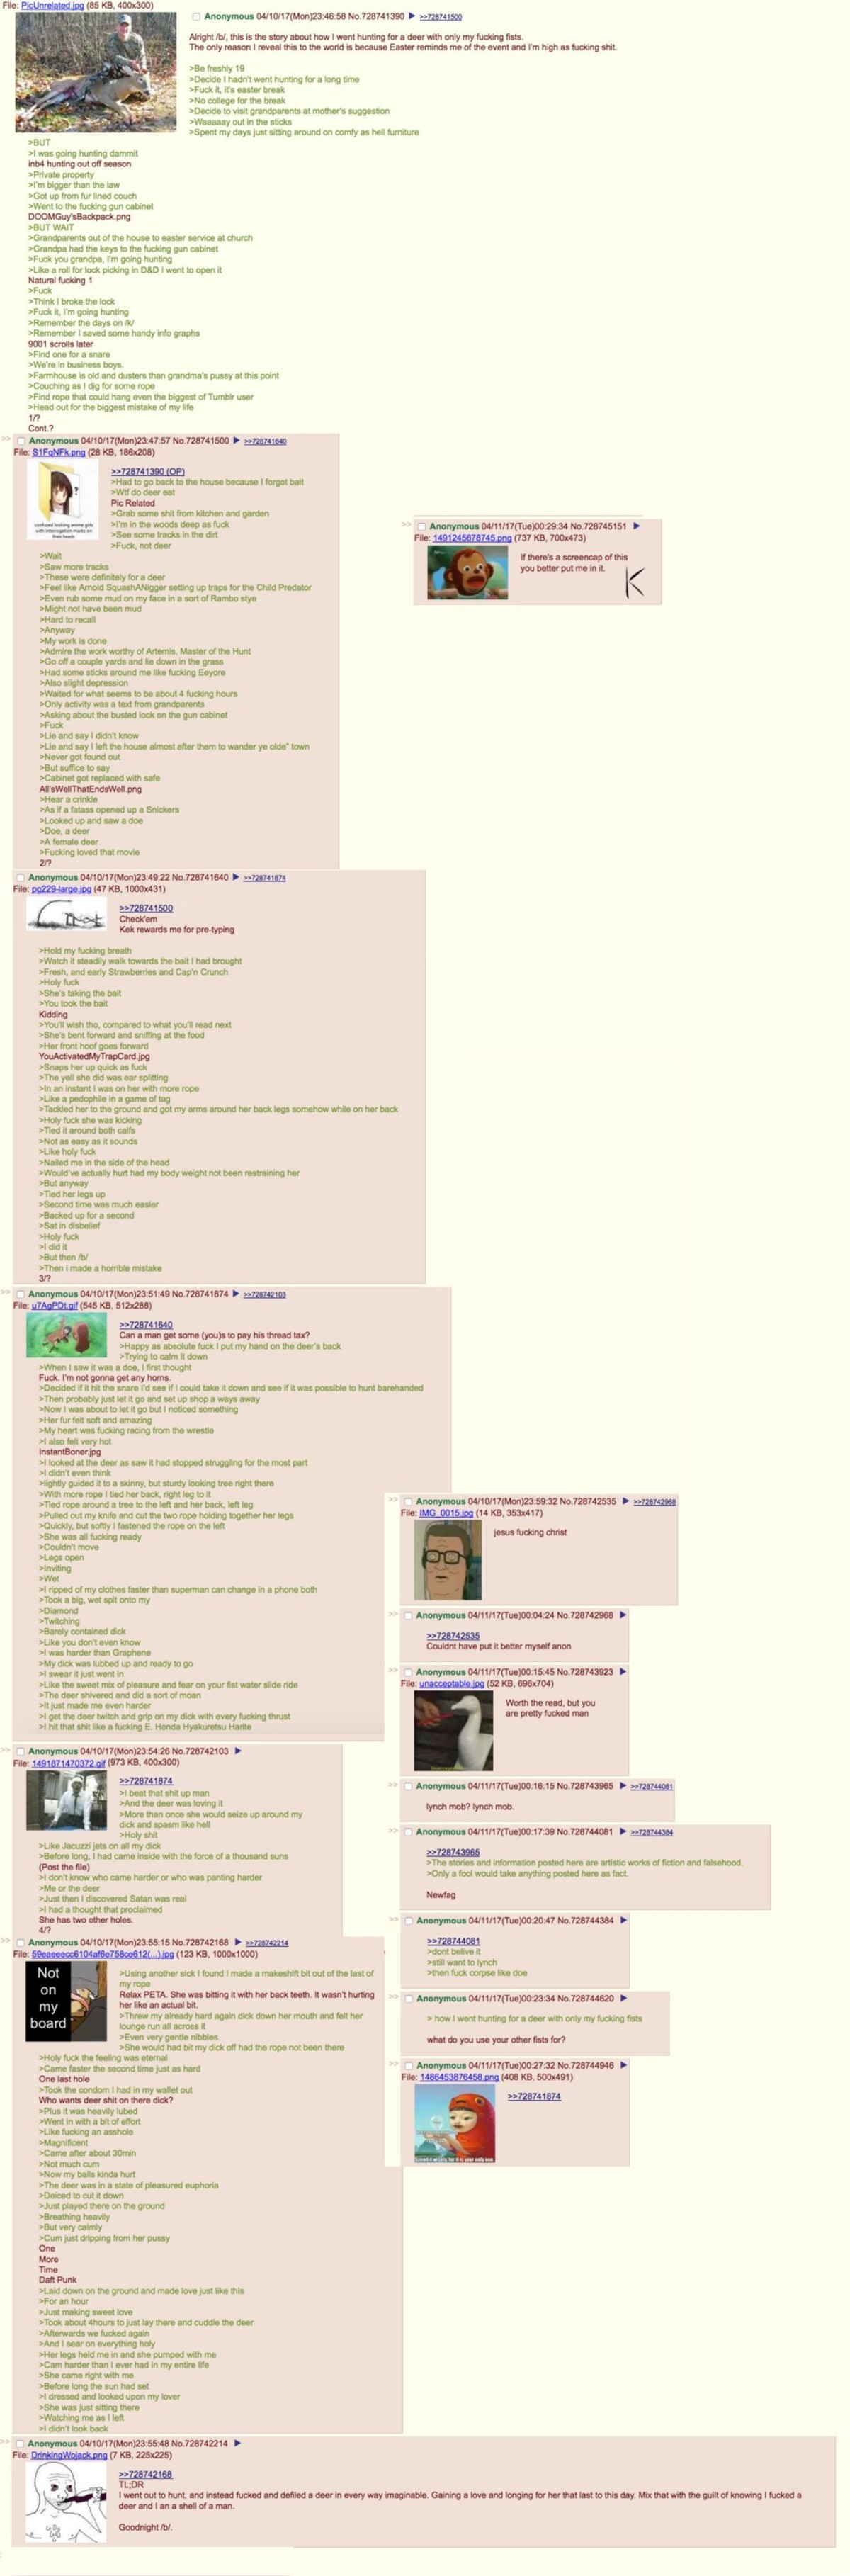 Anon goes hunting. join list: Chanoholic (322 subs)Mention History.. Deer lord.